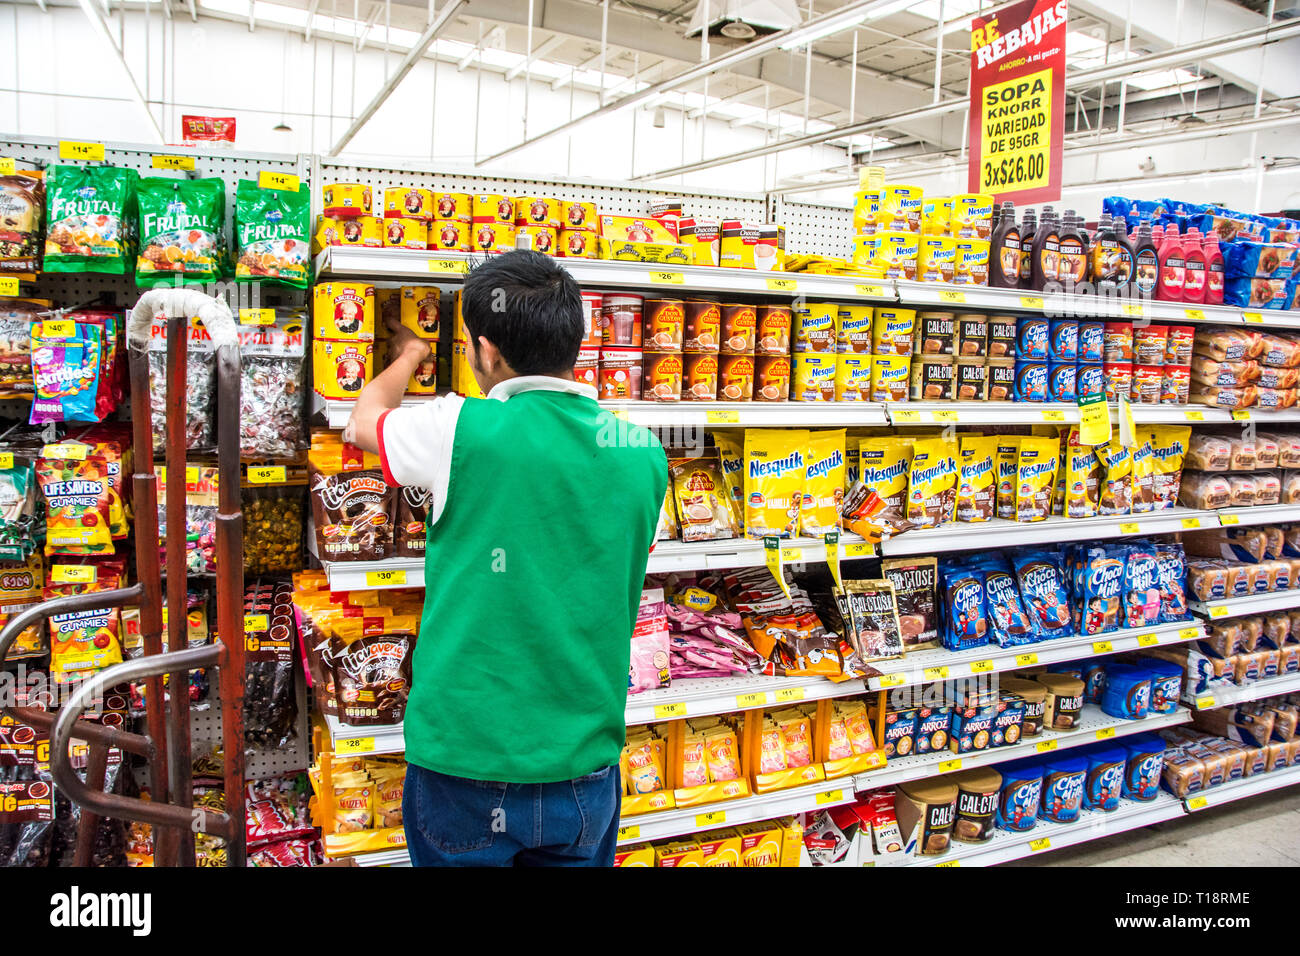 A young boy stocking shelves at a supermarket in Ensenada, Mexico. - Stock Image